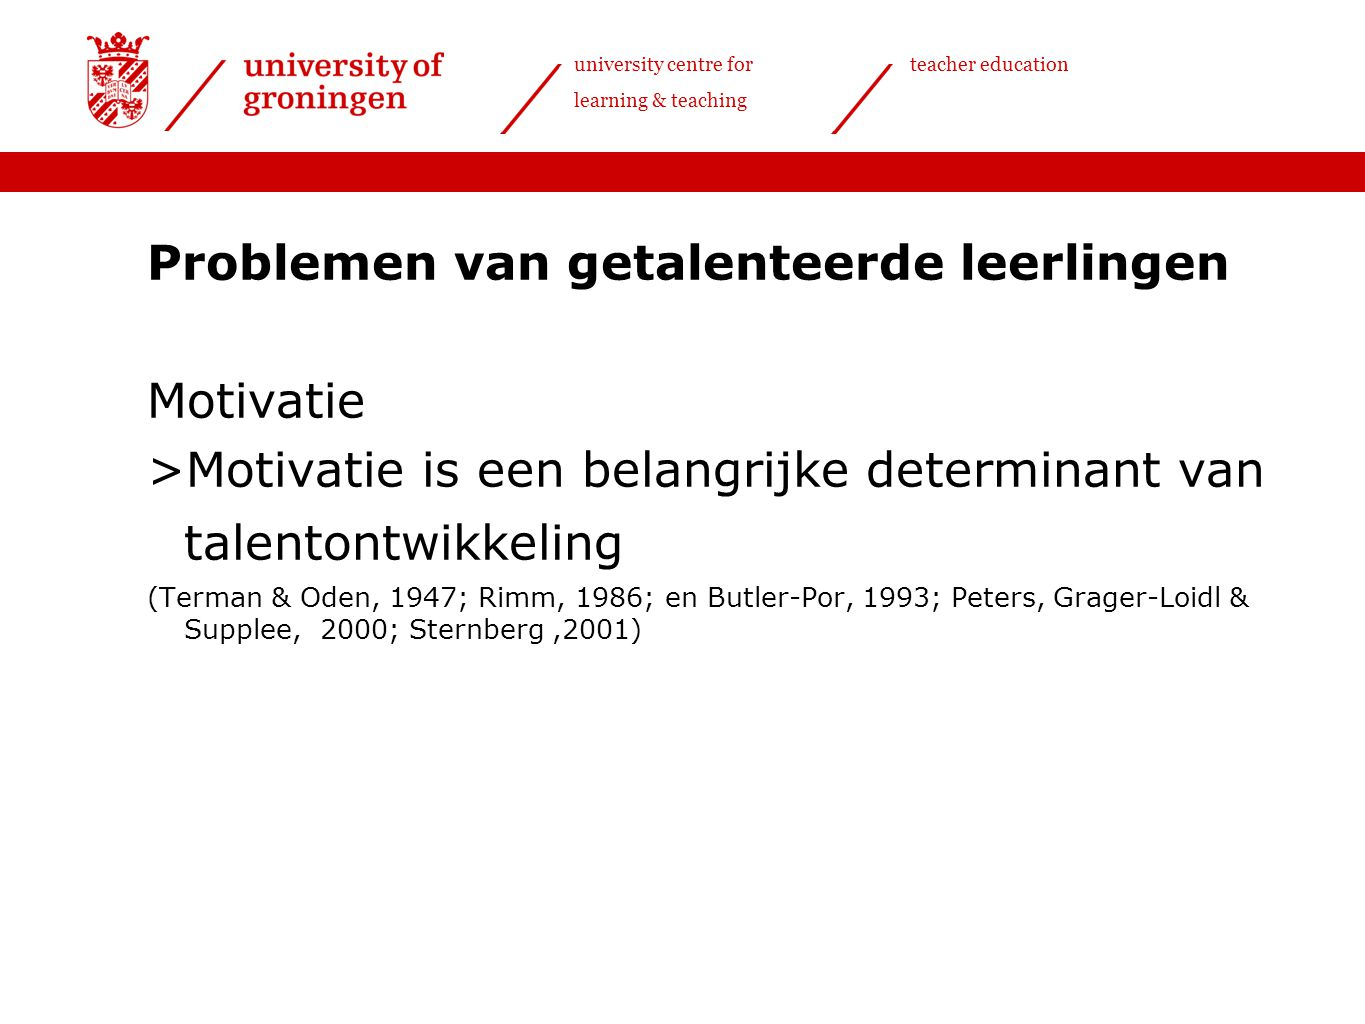 university centre for learning & teaching teacher education Problemen van getalenteerde leerlingen Motivatie >Motivatie is een belangrijke determinant van talentontwikkeling (Terman & Oden, 1947; Rimm, 1986; en Butler-Por, 1993; Peters, Grager-Loidl & Supplee, 2000; Sternberg,2001)